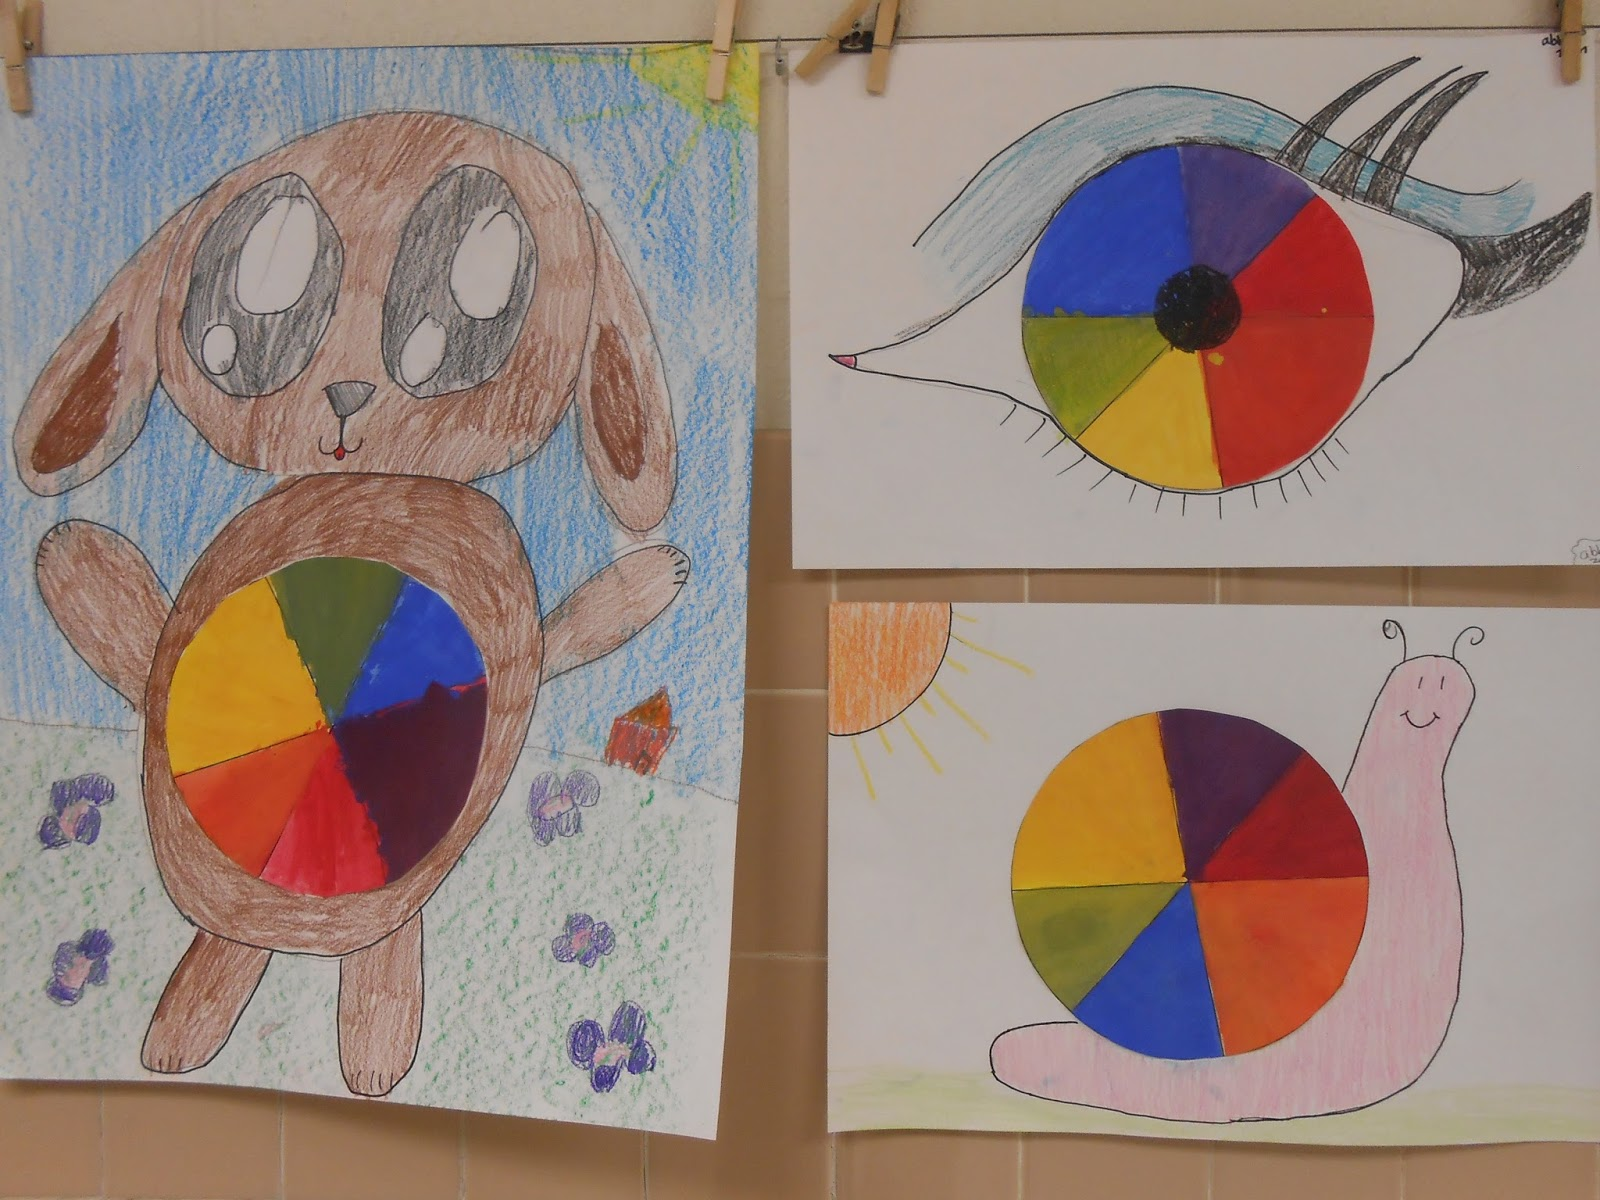 Color wheel art projects for kids -  Transform Their Color Wheels Into Part Of A Realistic Drawing I Was Very Impressed With The Ideas Kids Developed And The Effort They Put Into Adding